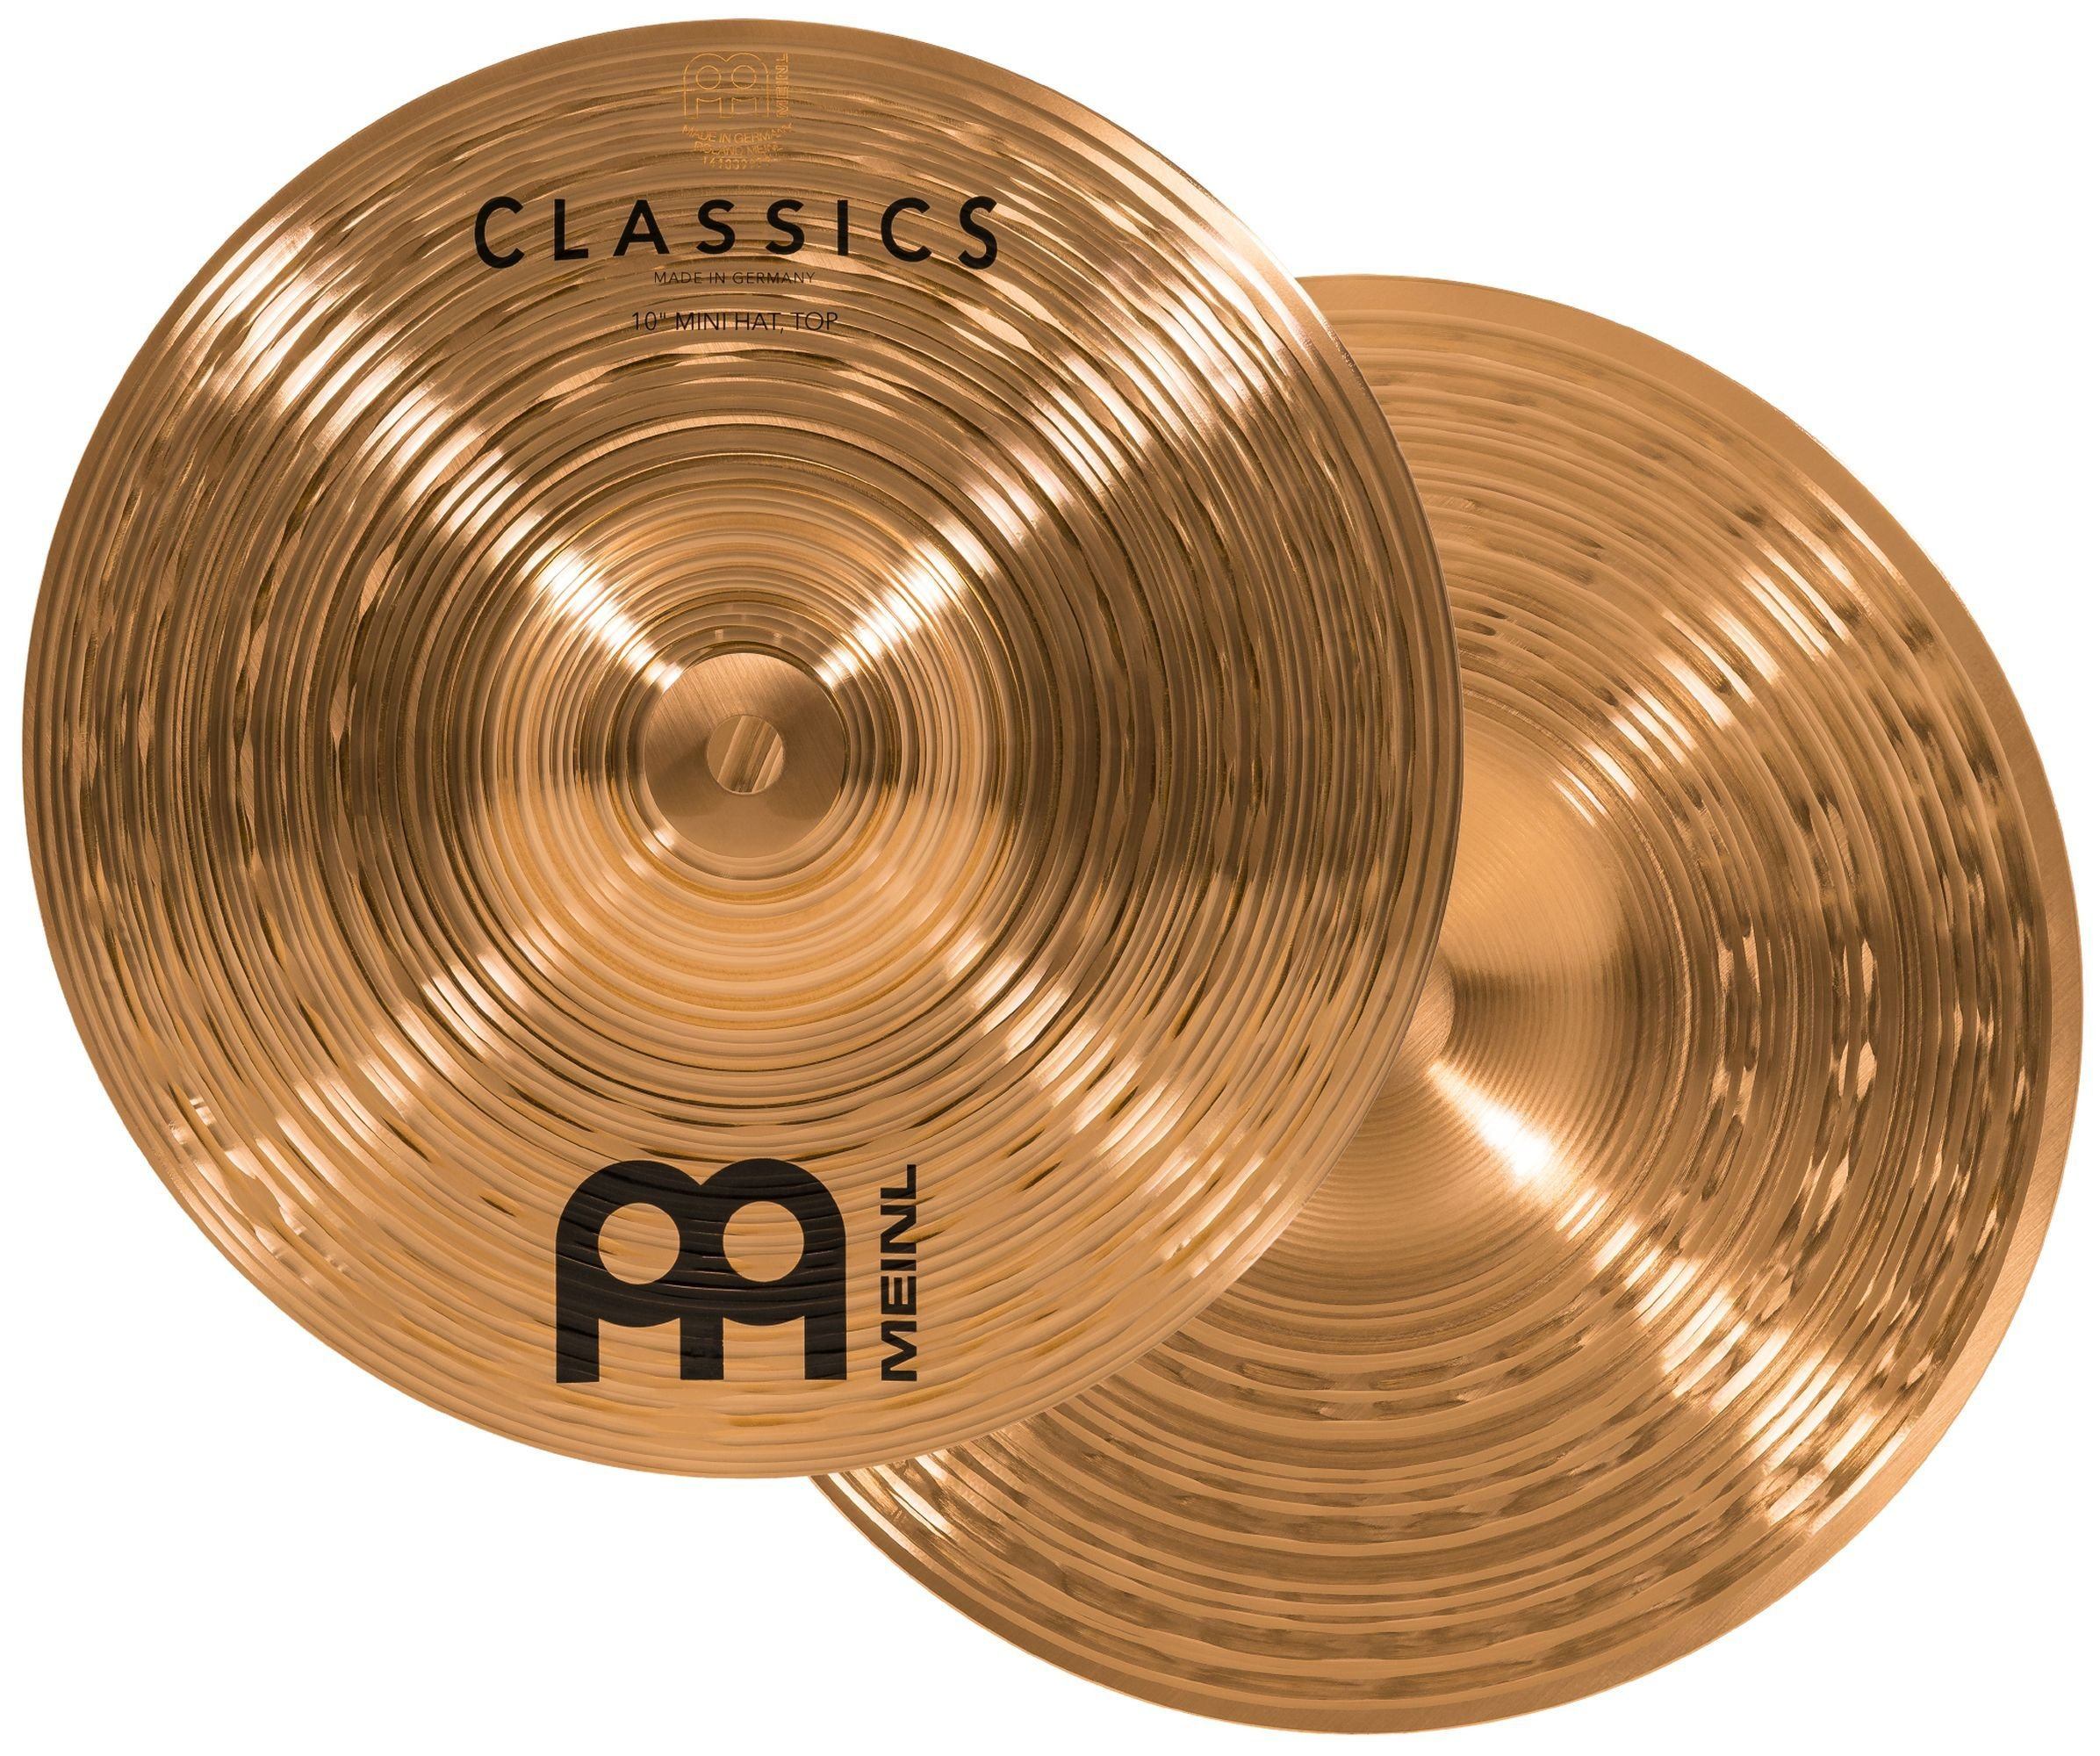 Meinl 10'' Mini Hihat (Hi Hat) Cymbal Pair - Classics Traditional - Made in Germany, 2-YEAR WARRANTY (C10MH)